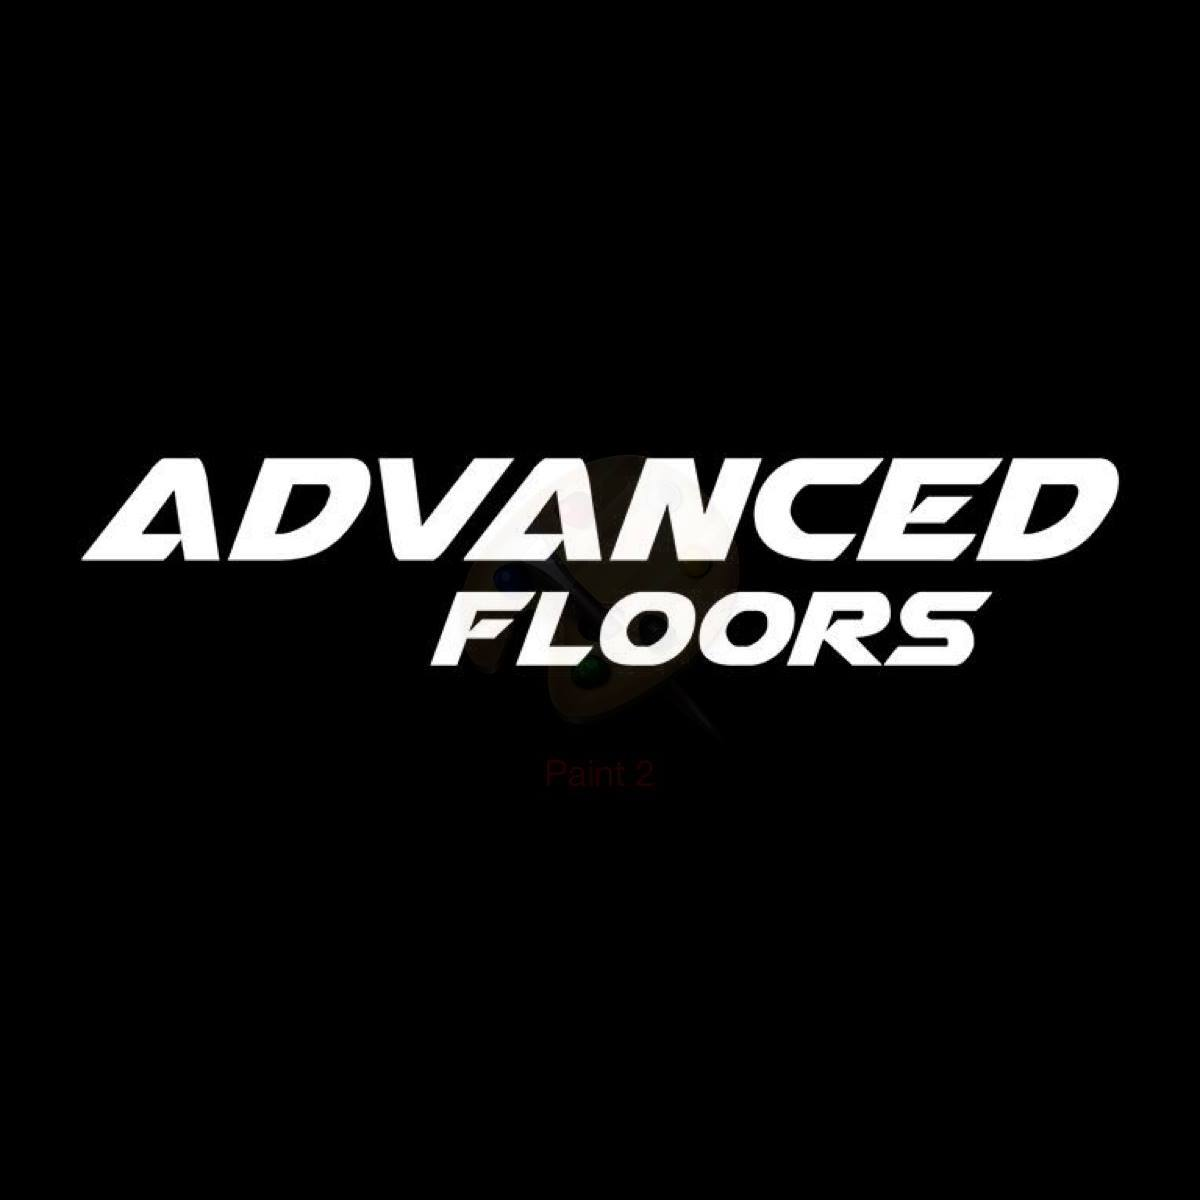 Advanced Floors